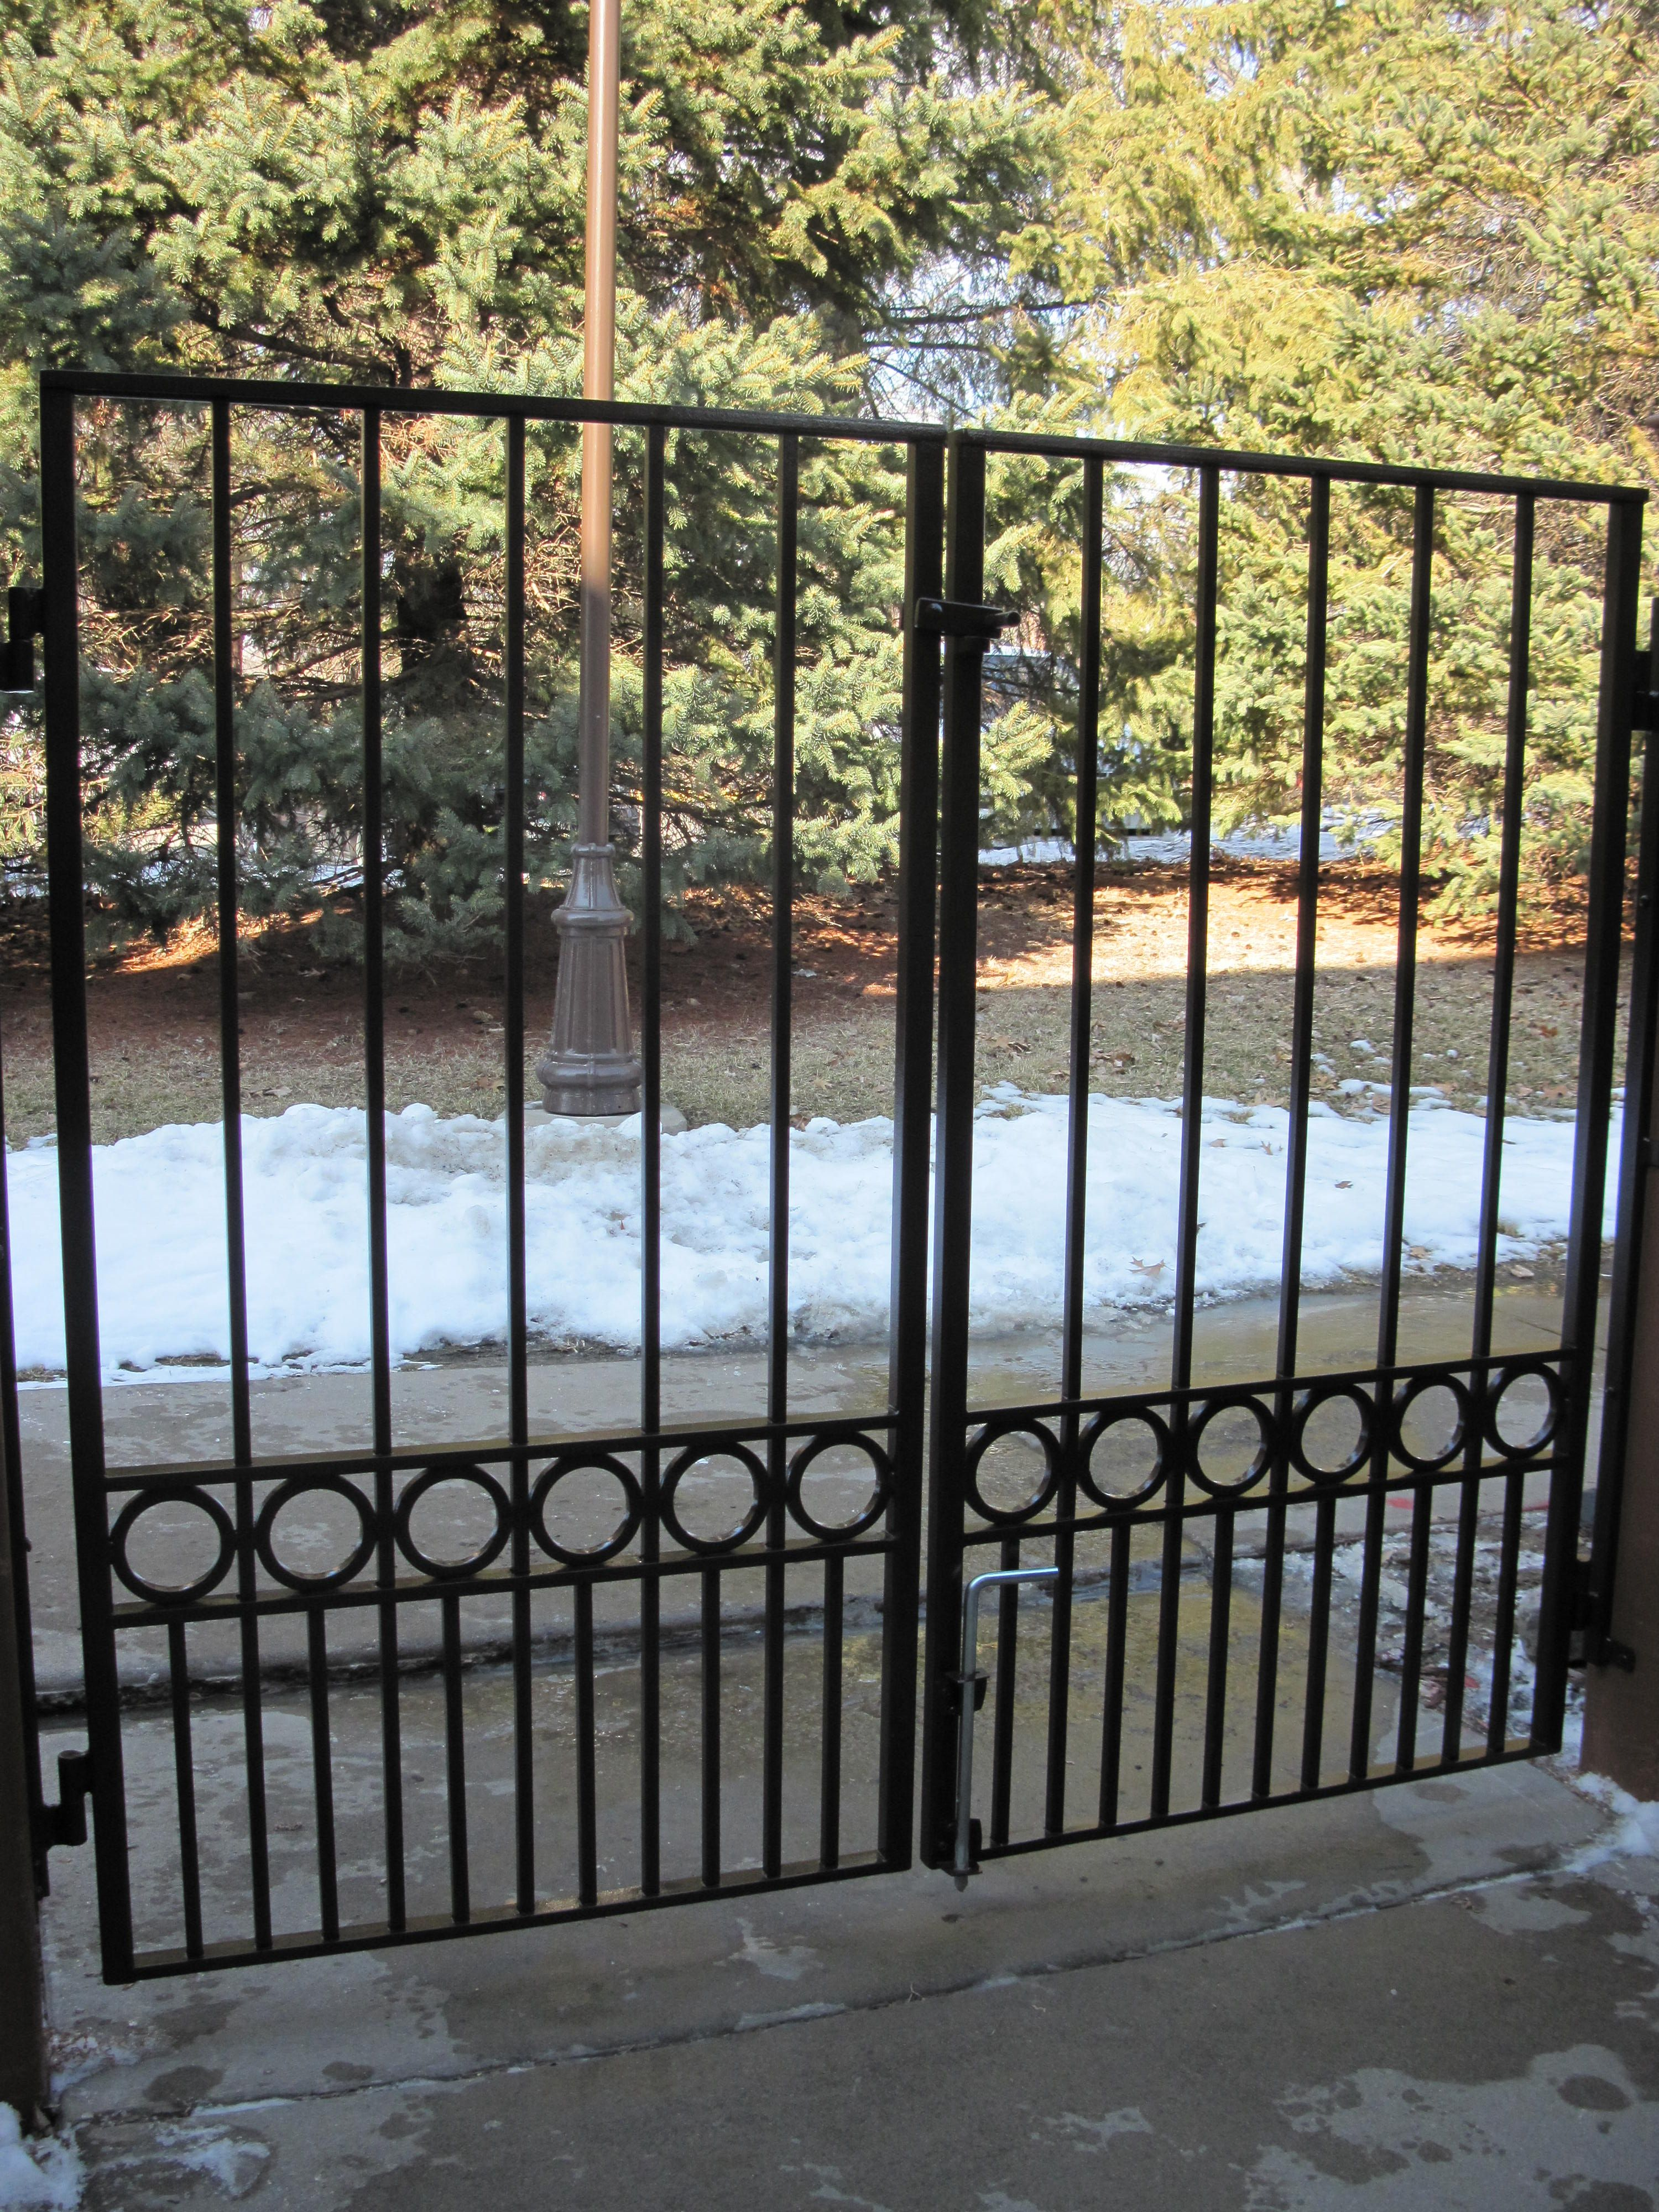 Double Iron Gates For Patio Area Close Spoke Spacing At Bottom